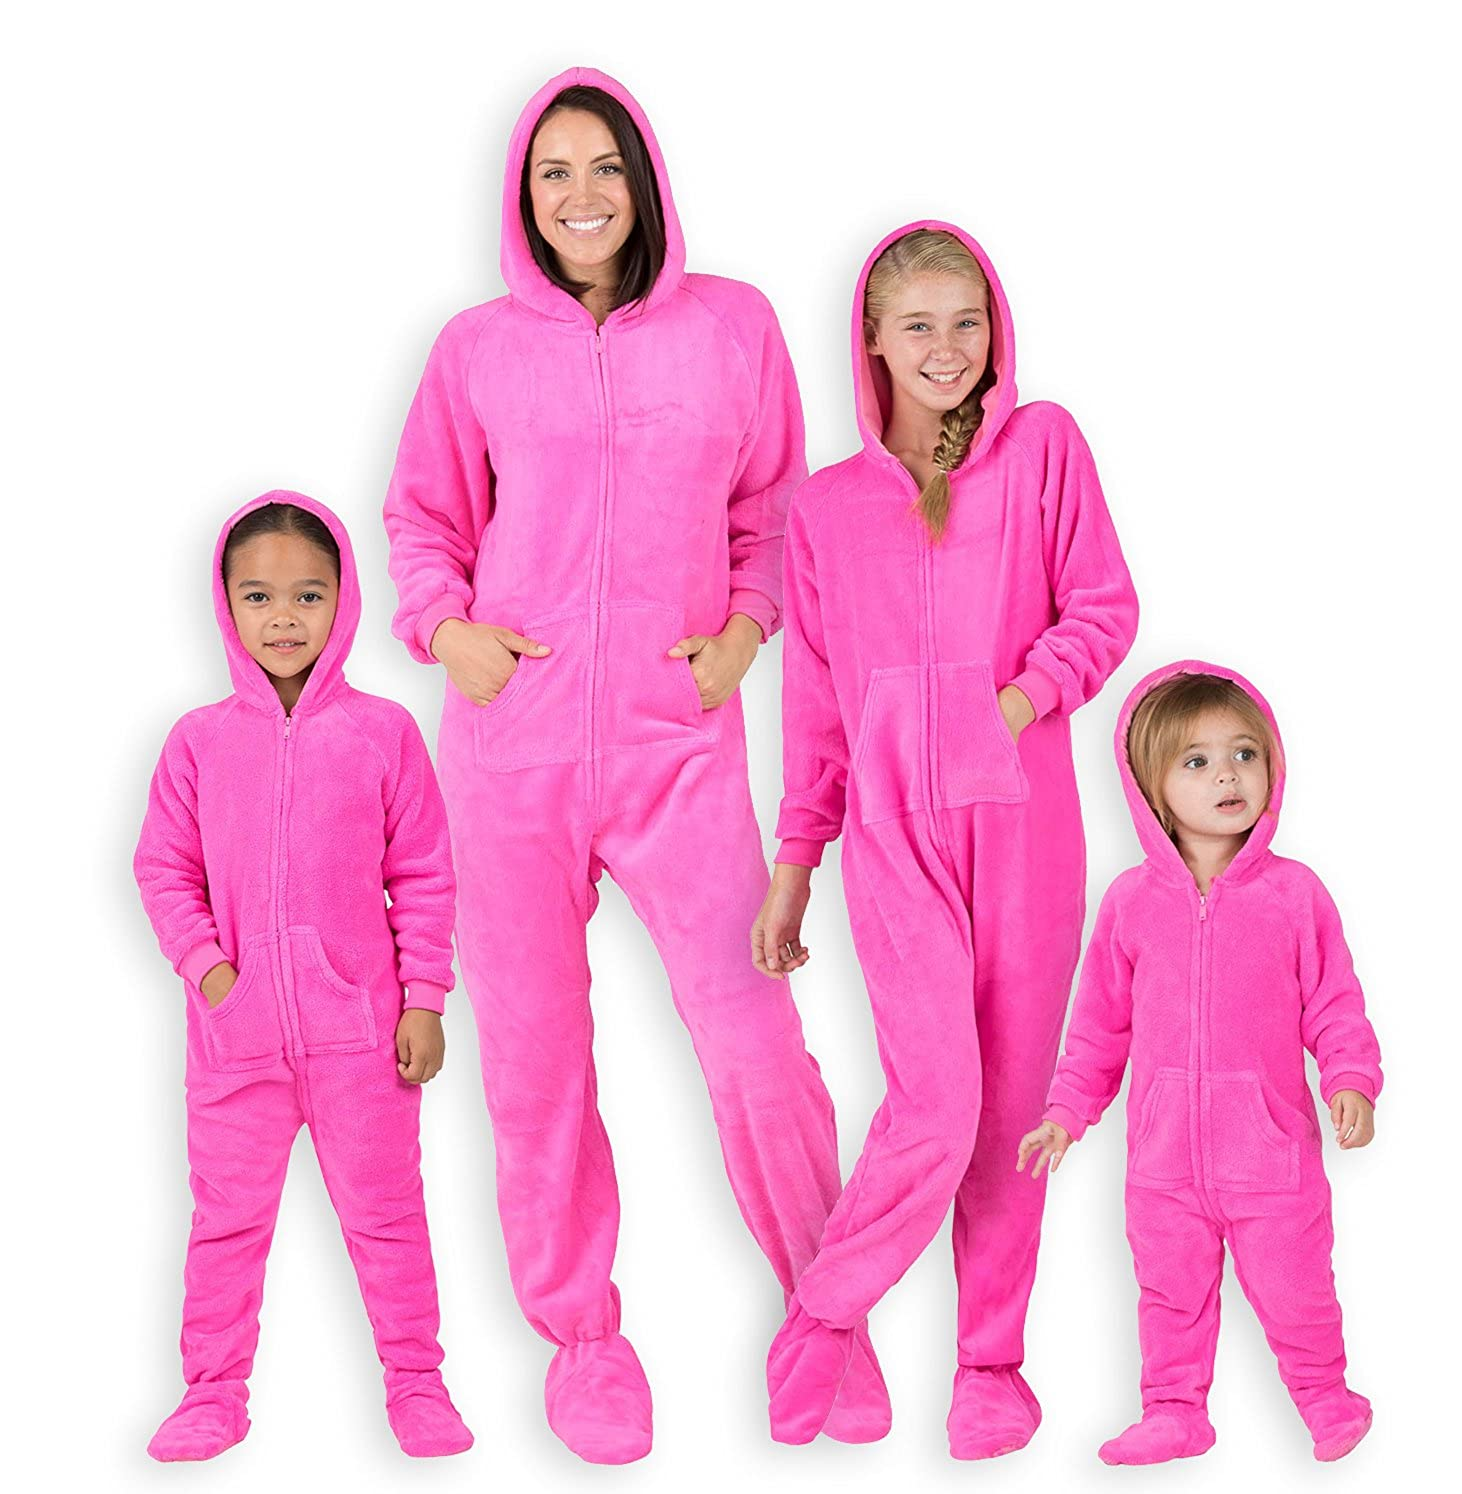 fa16b5af22 Amazon.com  Footed Pajamas - Family Matching Neon Pink Hoodie Onesies for  Boys